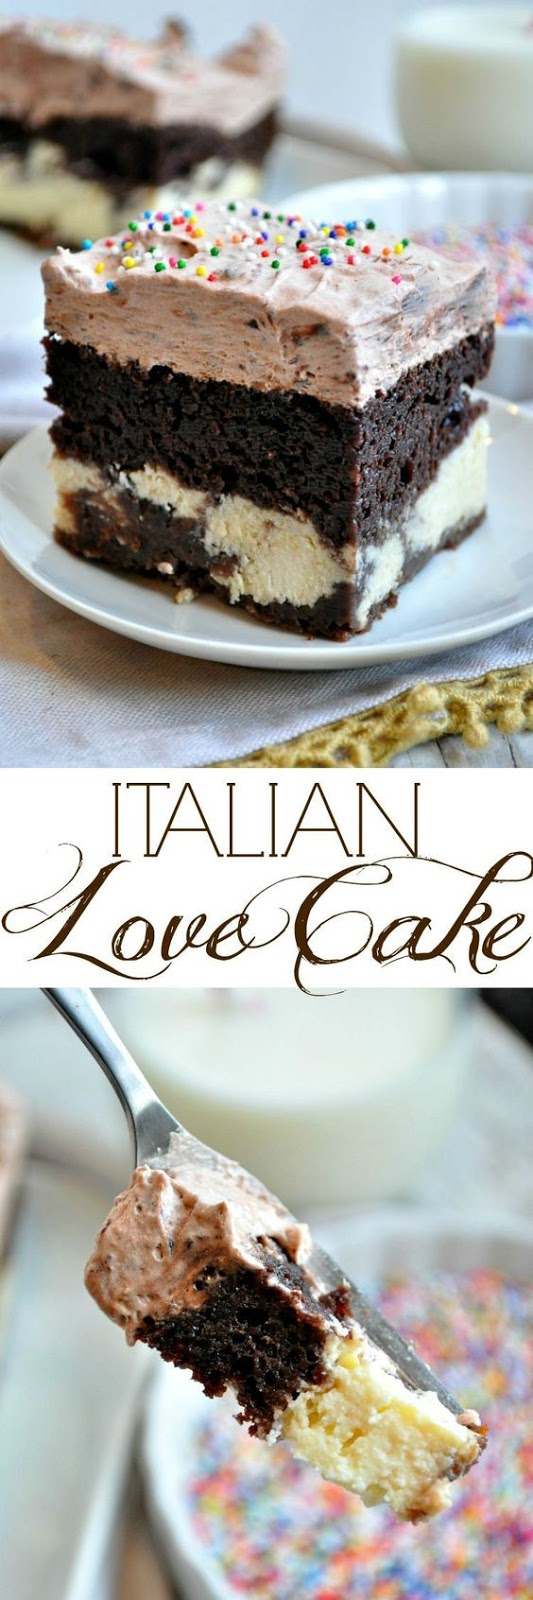 This Italian Love Cake starts with a boxed cake mix for an easy dessert recipe that only looks fancy! With chocolate, sweet ricotta and a whipped pudding topping, the layered Italian cake is moist, rich and perfect for Valentine's Day, birthdays, or any other special occasion!